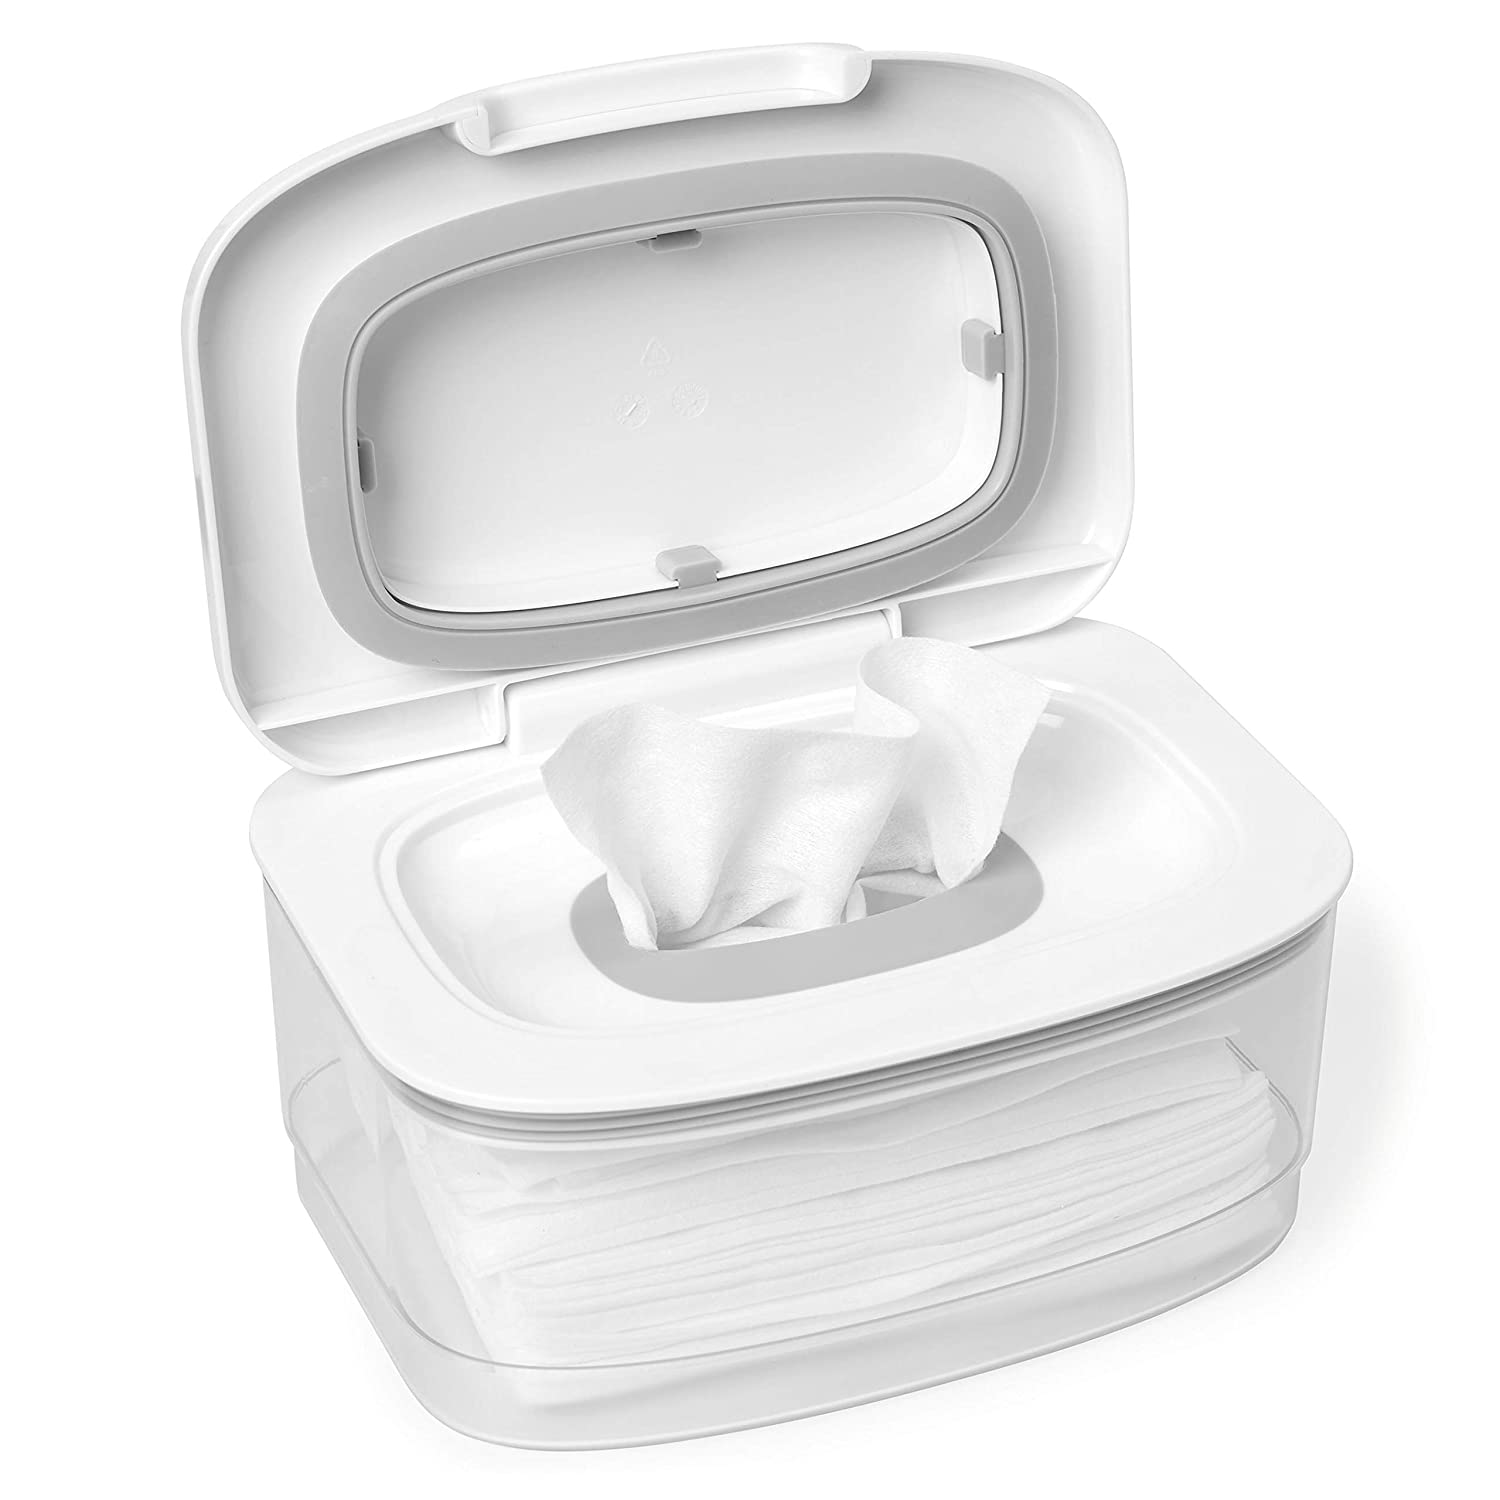 Skip Hop Wipes Dispenser with Moisture Seal Secure Lid, White